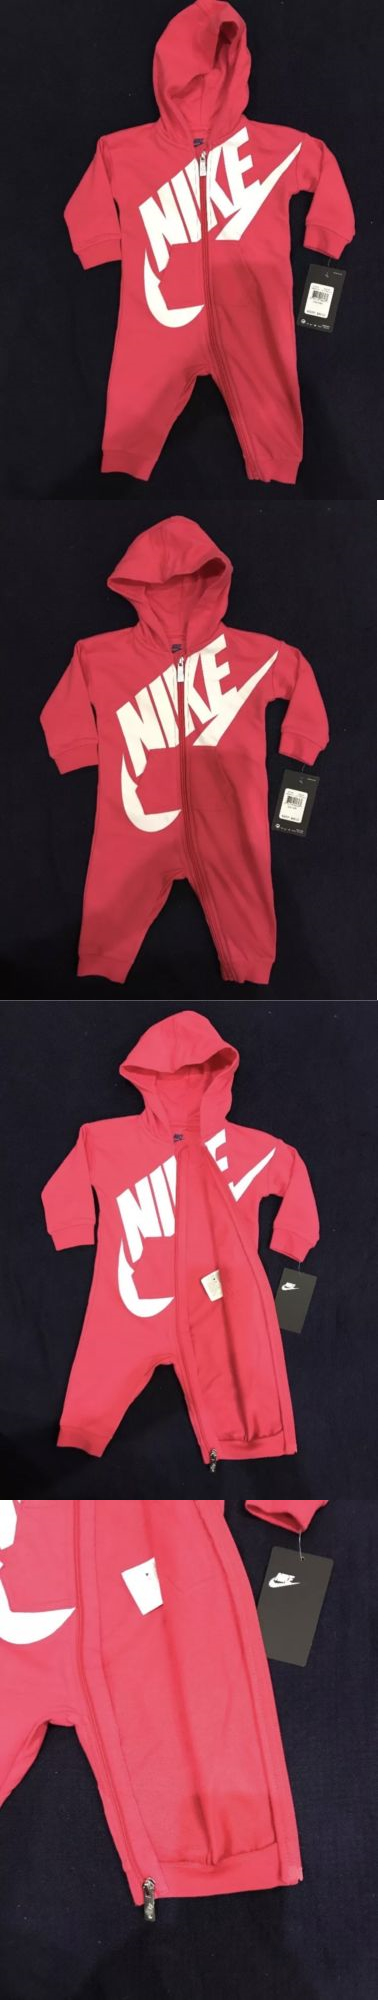 One-Pieces 57847: Nike Baby Girls Futura Coveralls Bodysuit Romper Sz 6 9  Months